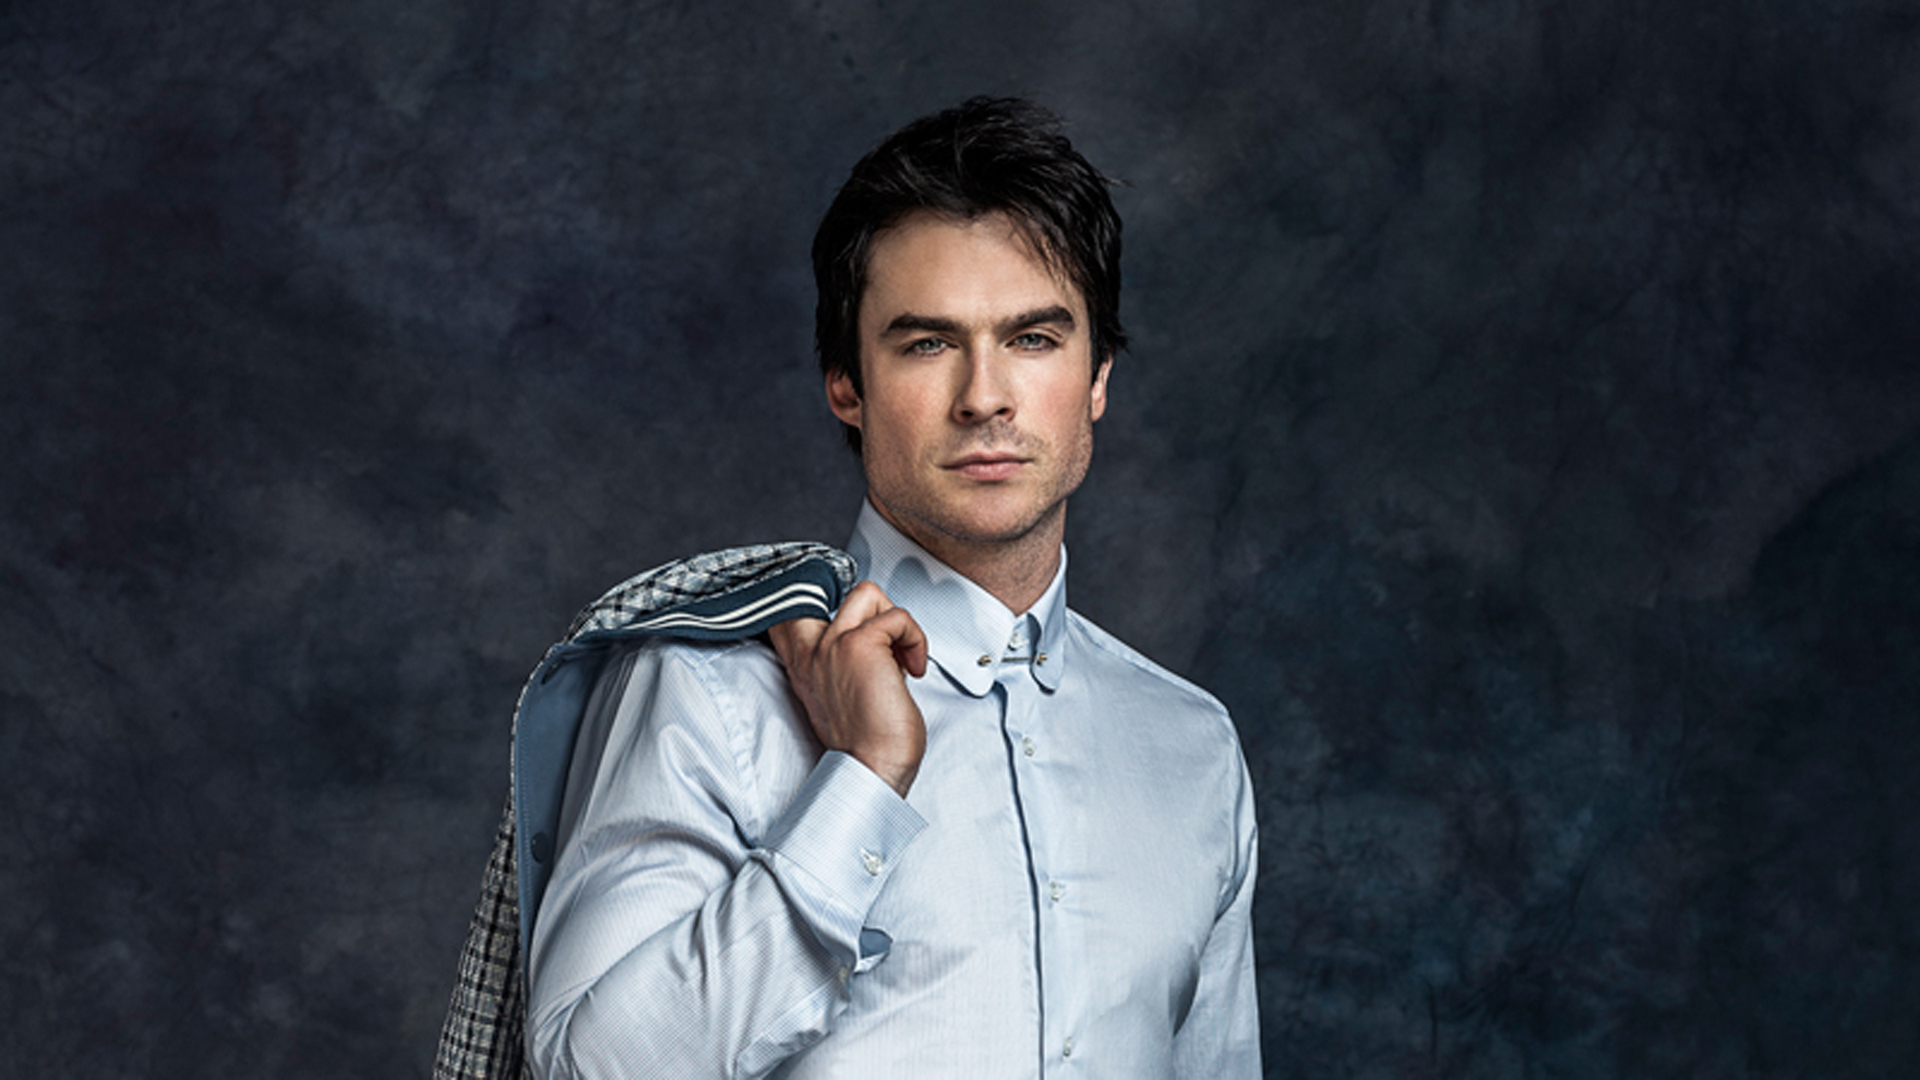 Free download Wallpapers Ian Somerhalder Galleries Ian Somerhalder ...